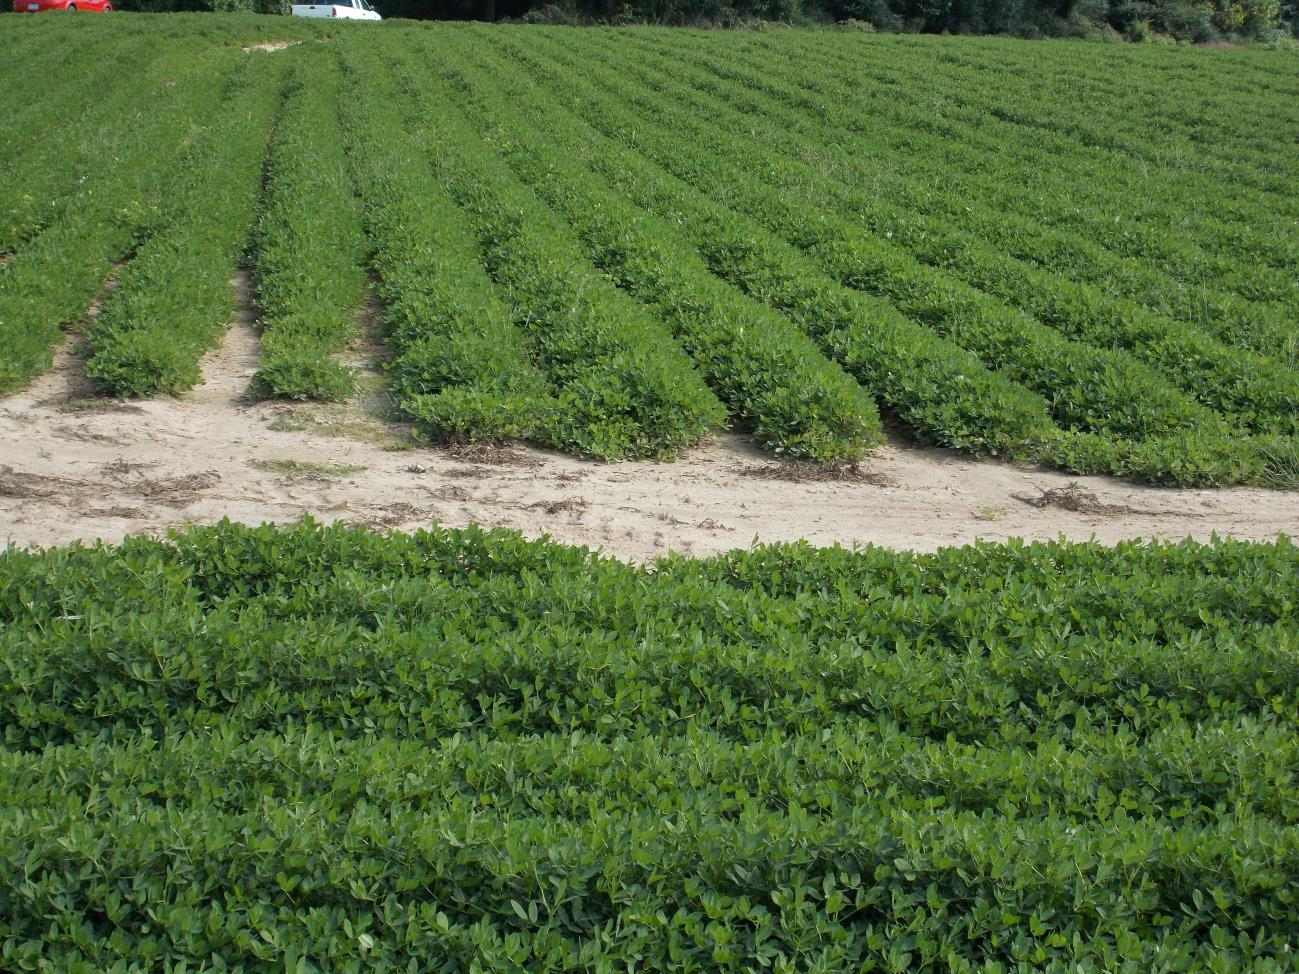 Peanut from same area showing recovery after soil drying in late summer.